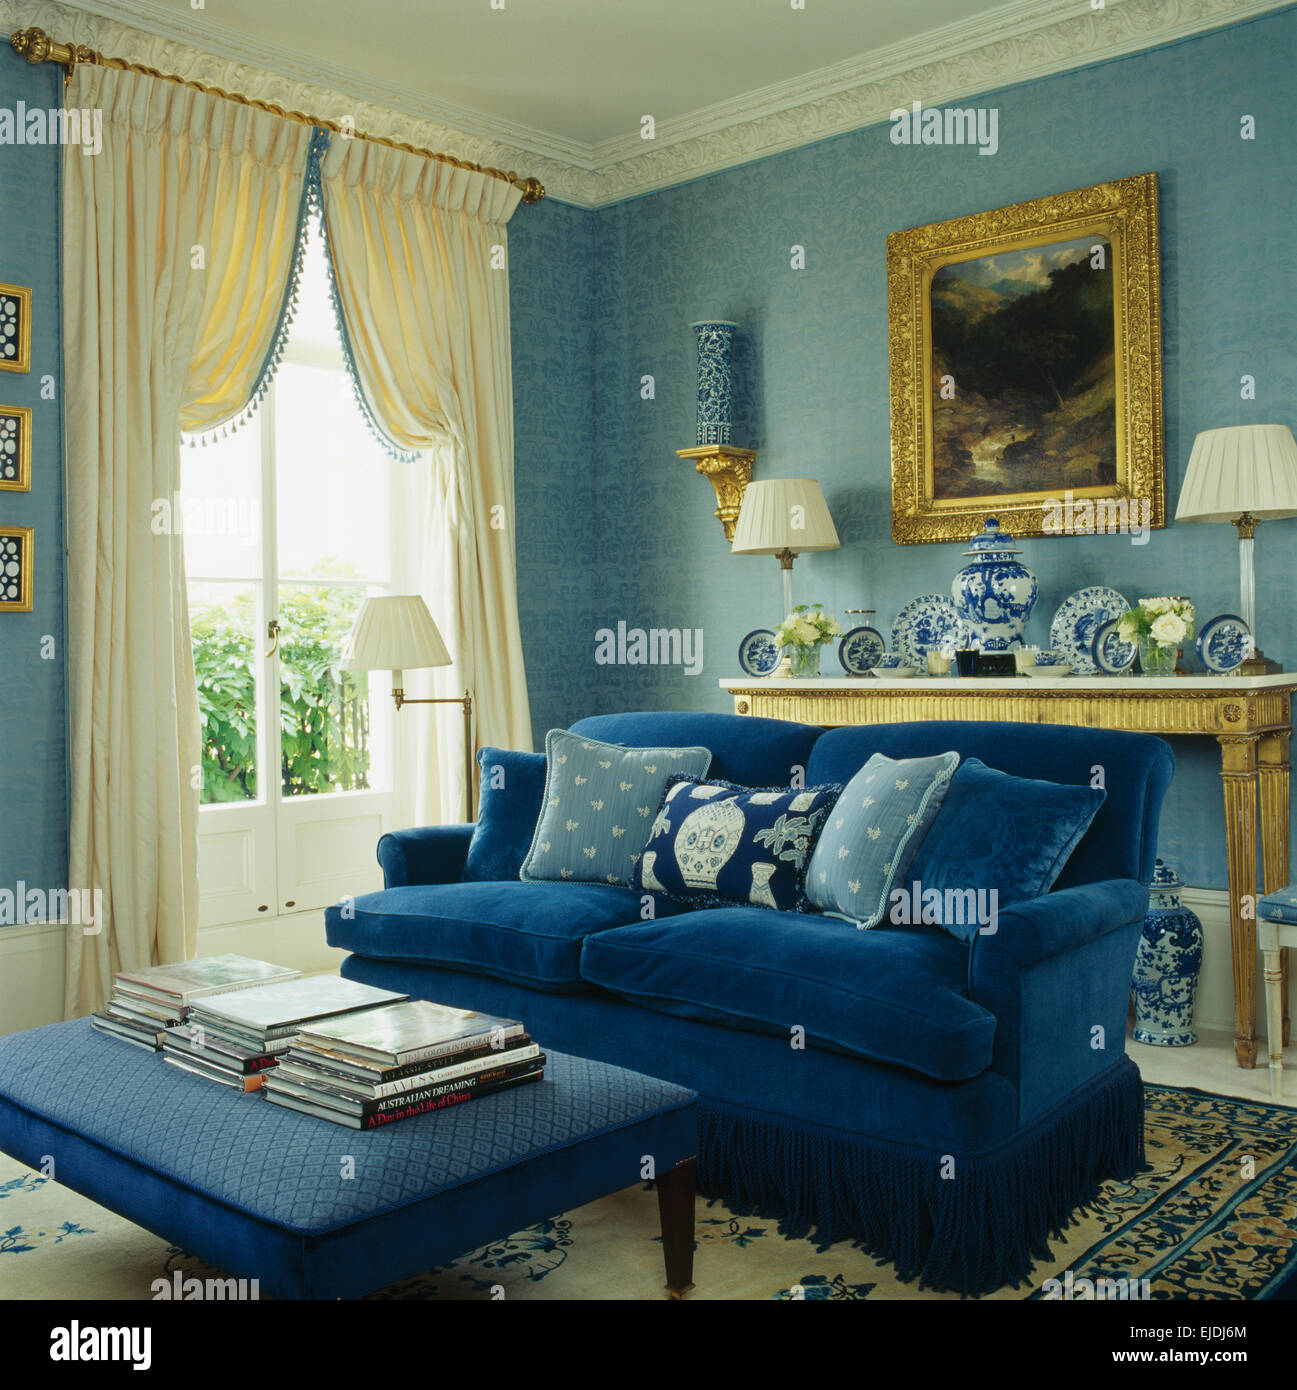 Incroyable Upholstered Stool And Deep Blue Sofa With Toning Blue Cushions In Blue  Living Room With Cream